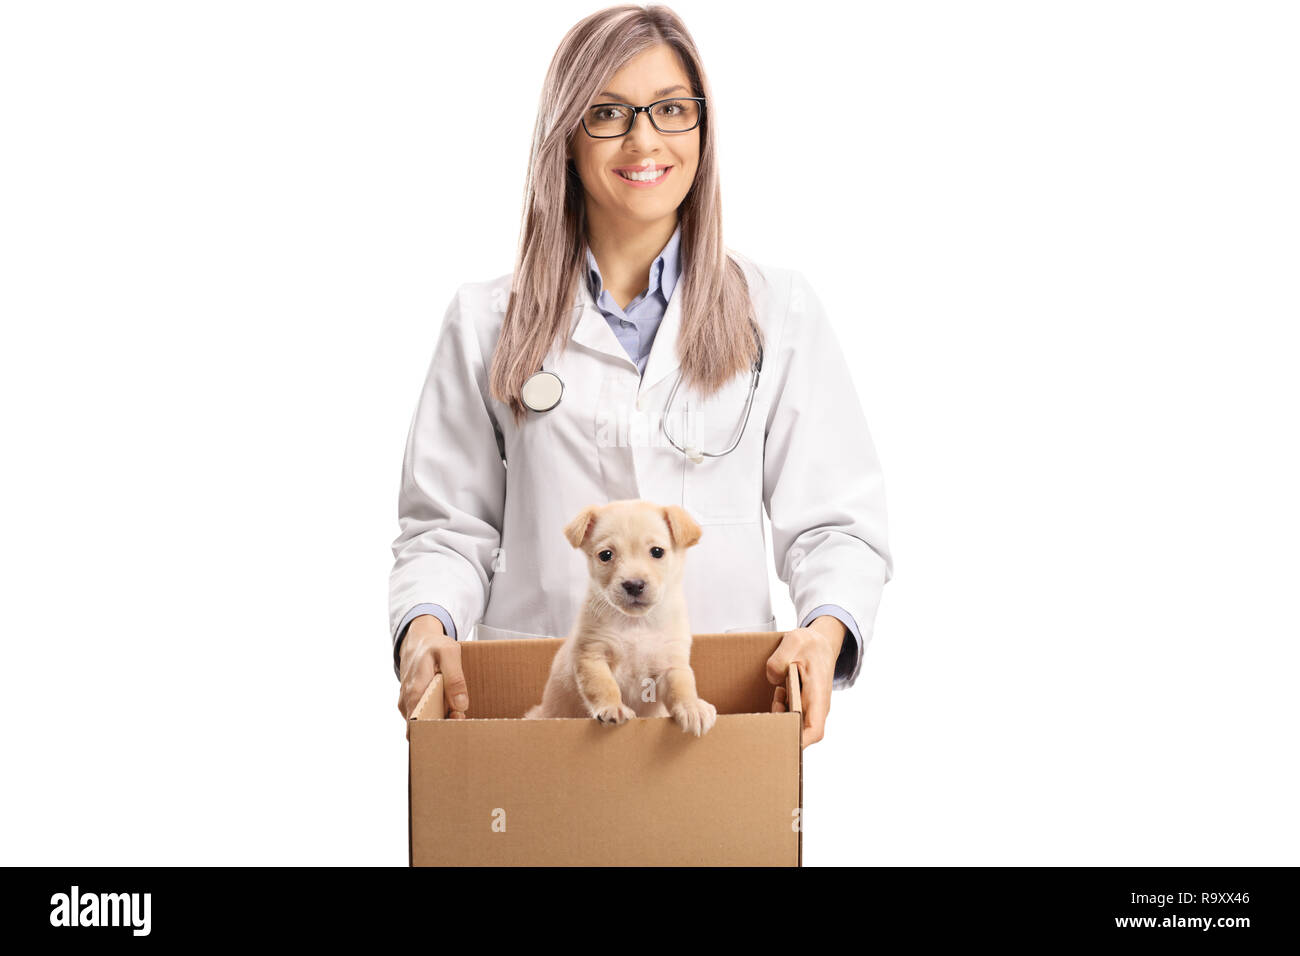 Young female vet doctor holding a puppy in a box isolated on white background - Stock Image